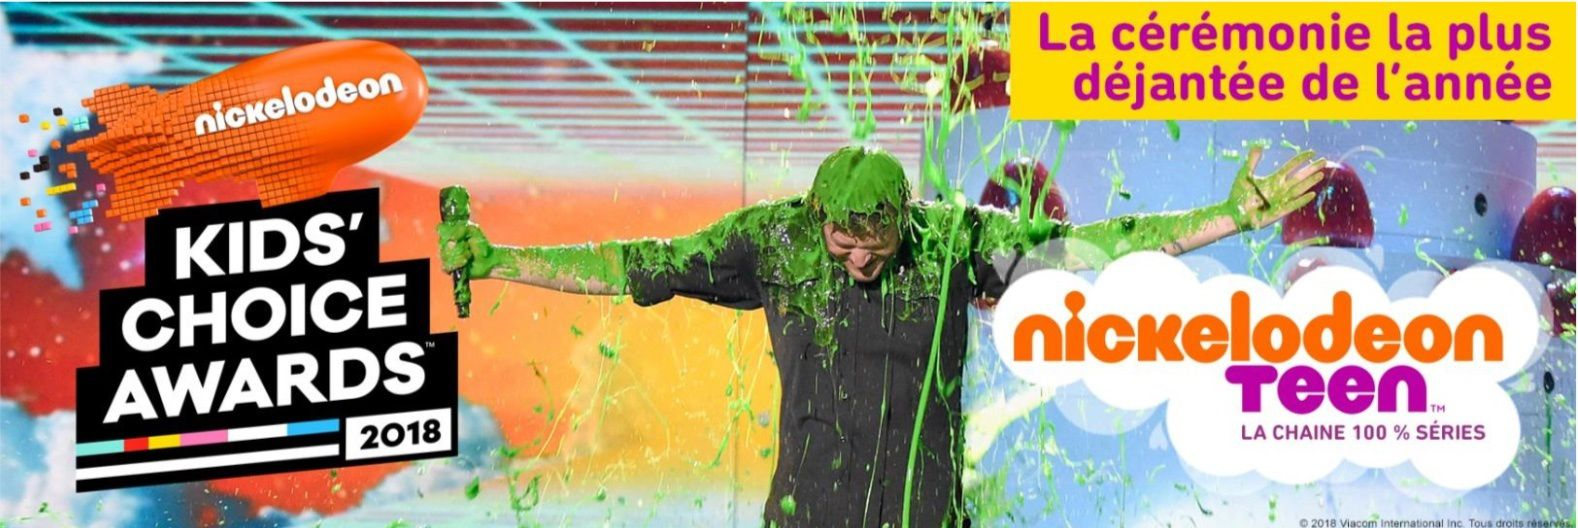 Diffusion française des Nickelodeon Kids Choice Awards le 25 mars.